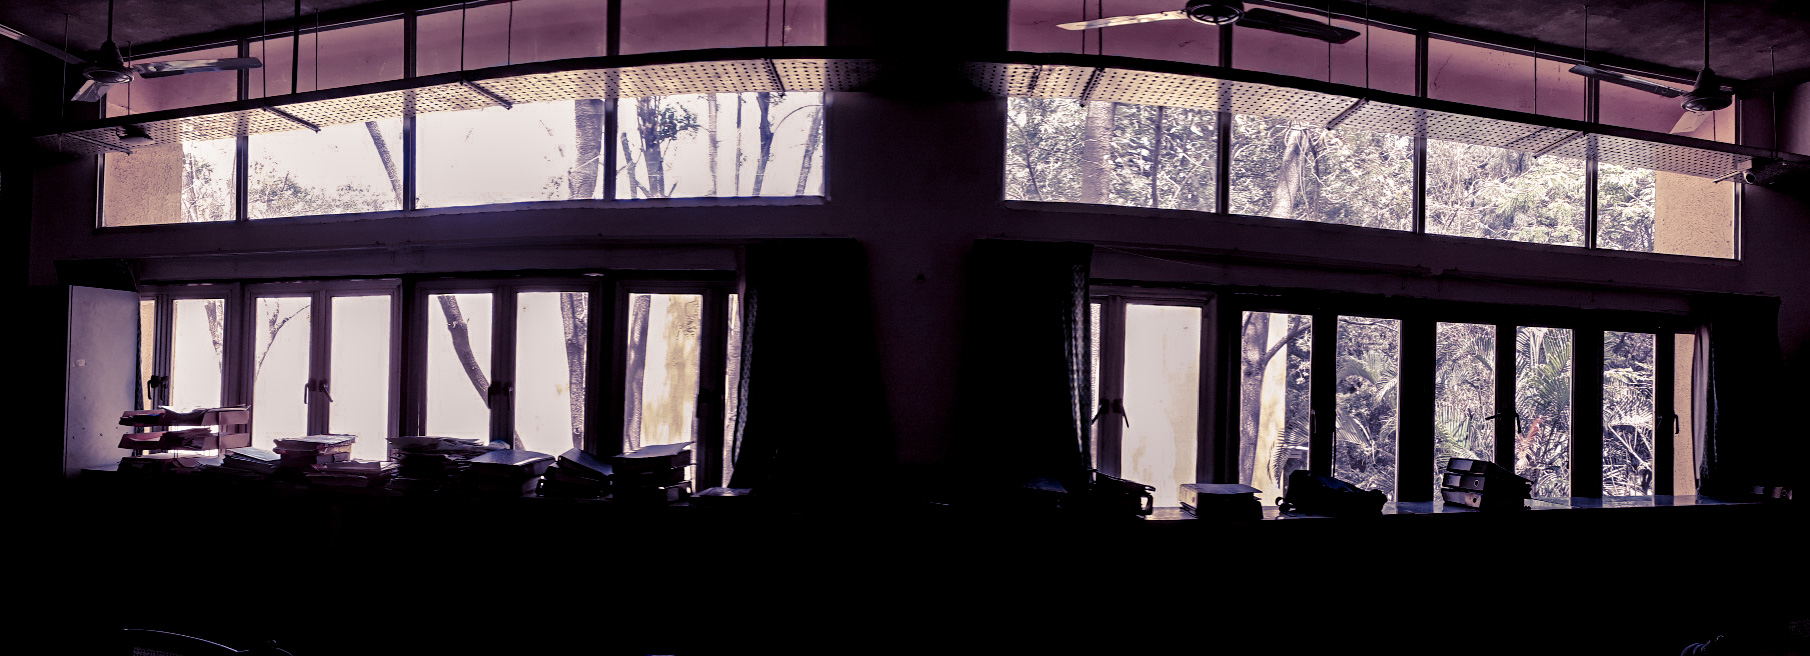 We stay confined within the walls of our living spaces busy with our chores - oblivious of the beautiful world outside...